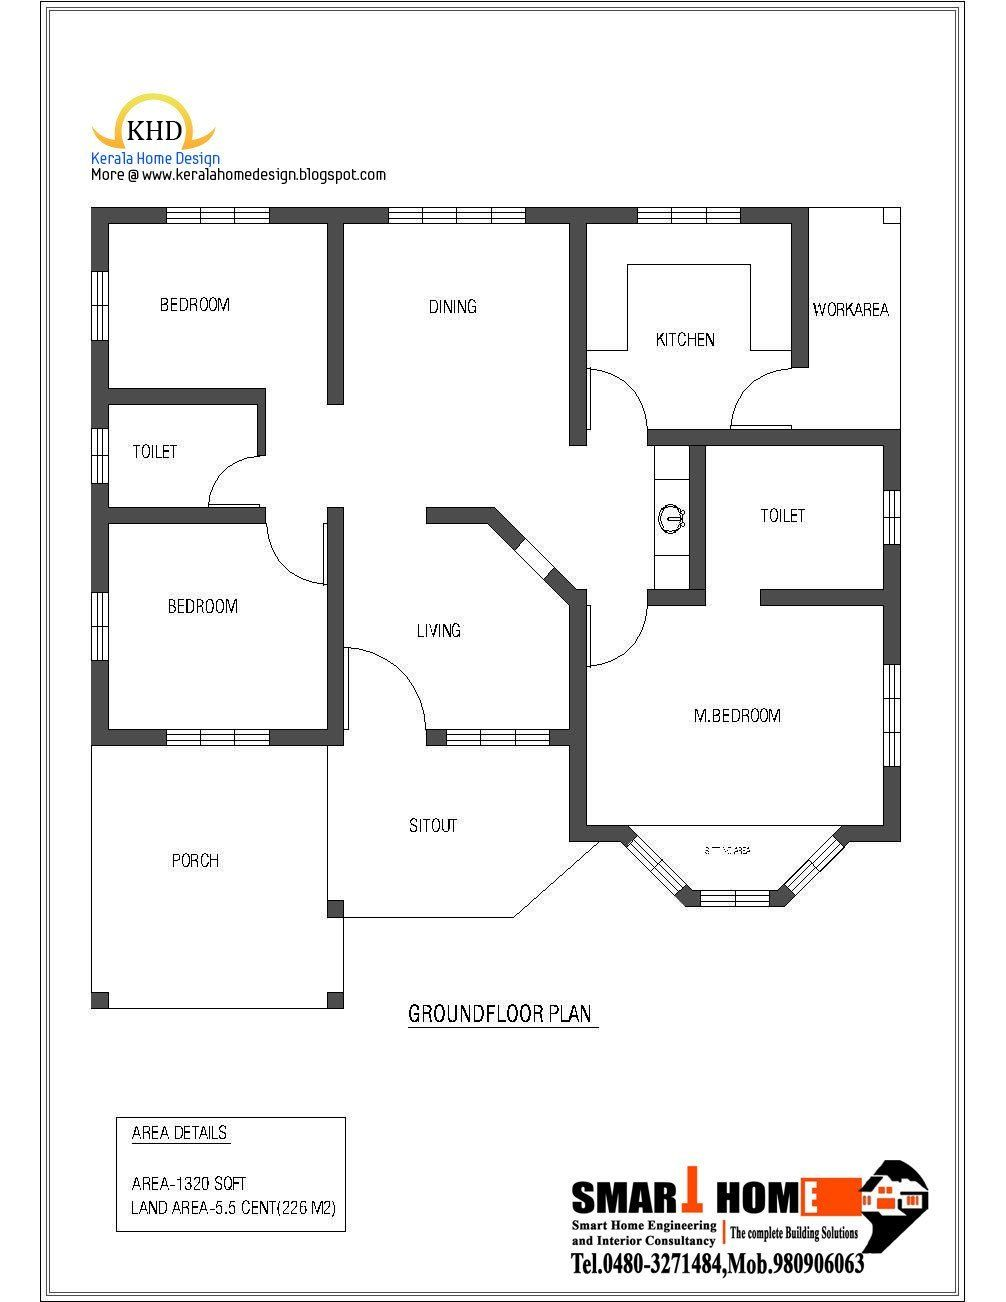 Kerala Modern House Single Floor Single Floor House Plan And Elevation 1320 Sq Ft In 2020 Home Design Floor Plans Indian House Plans Kerala House Design